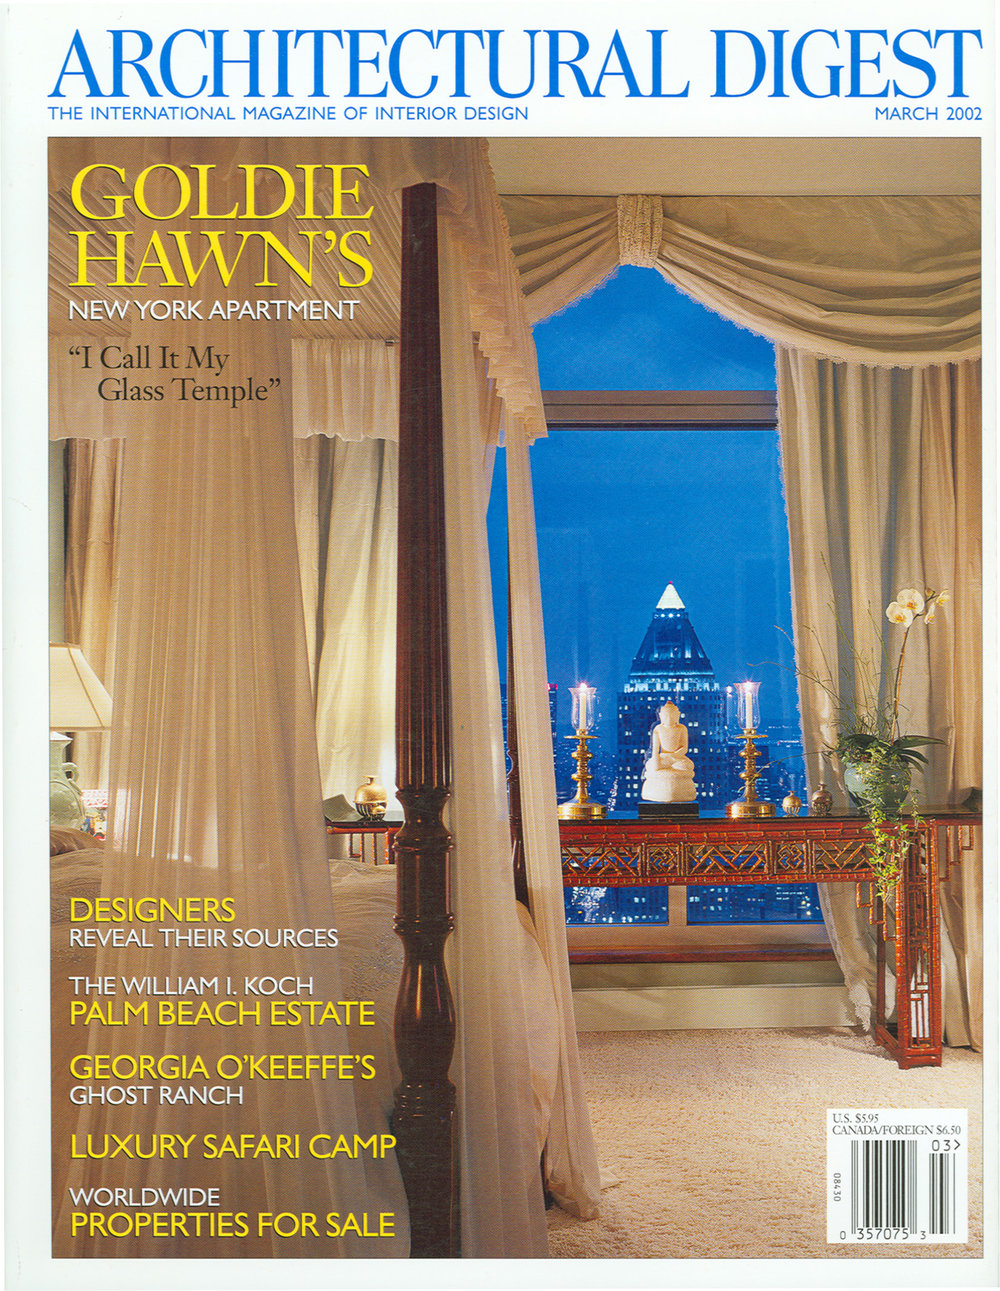 ARCHITECTURAL DIGEST - PALM BEACH